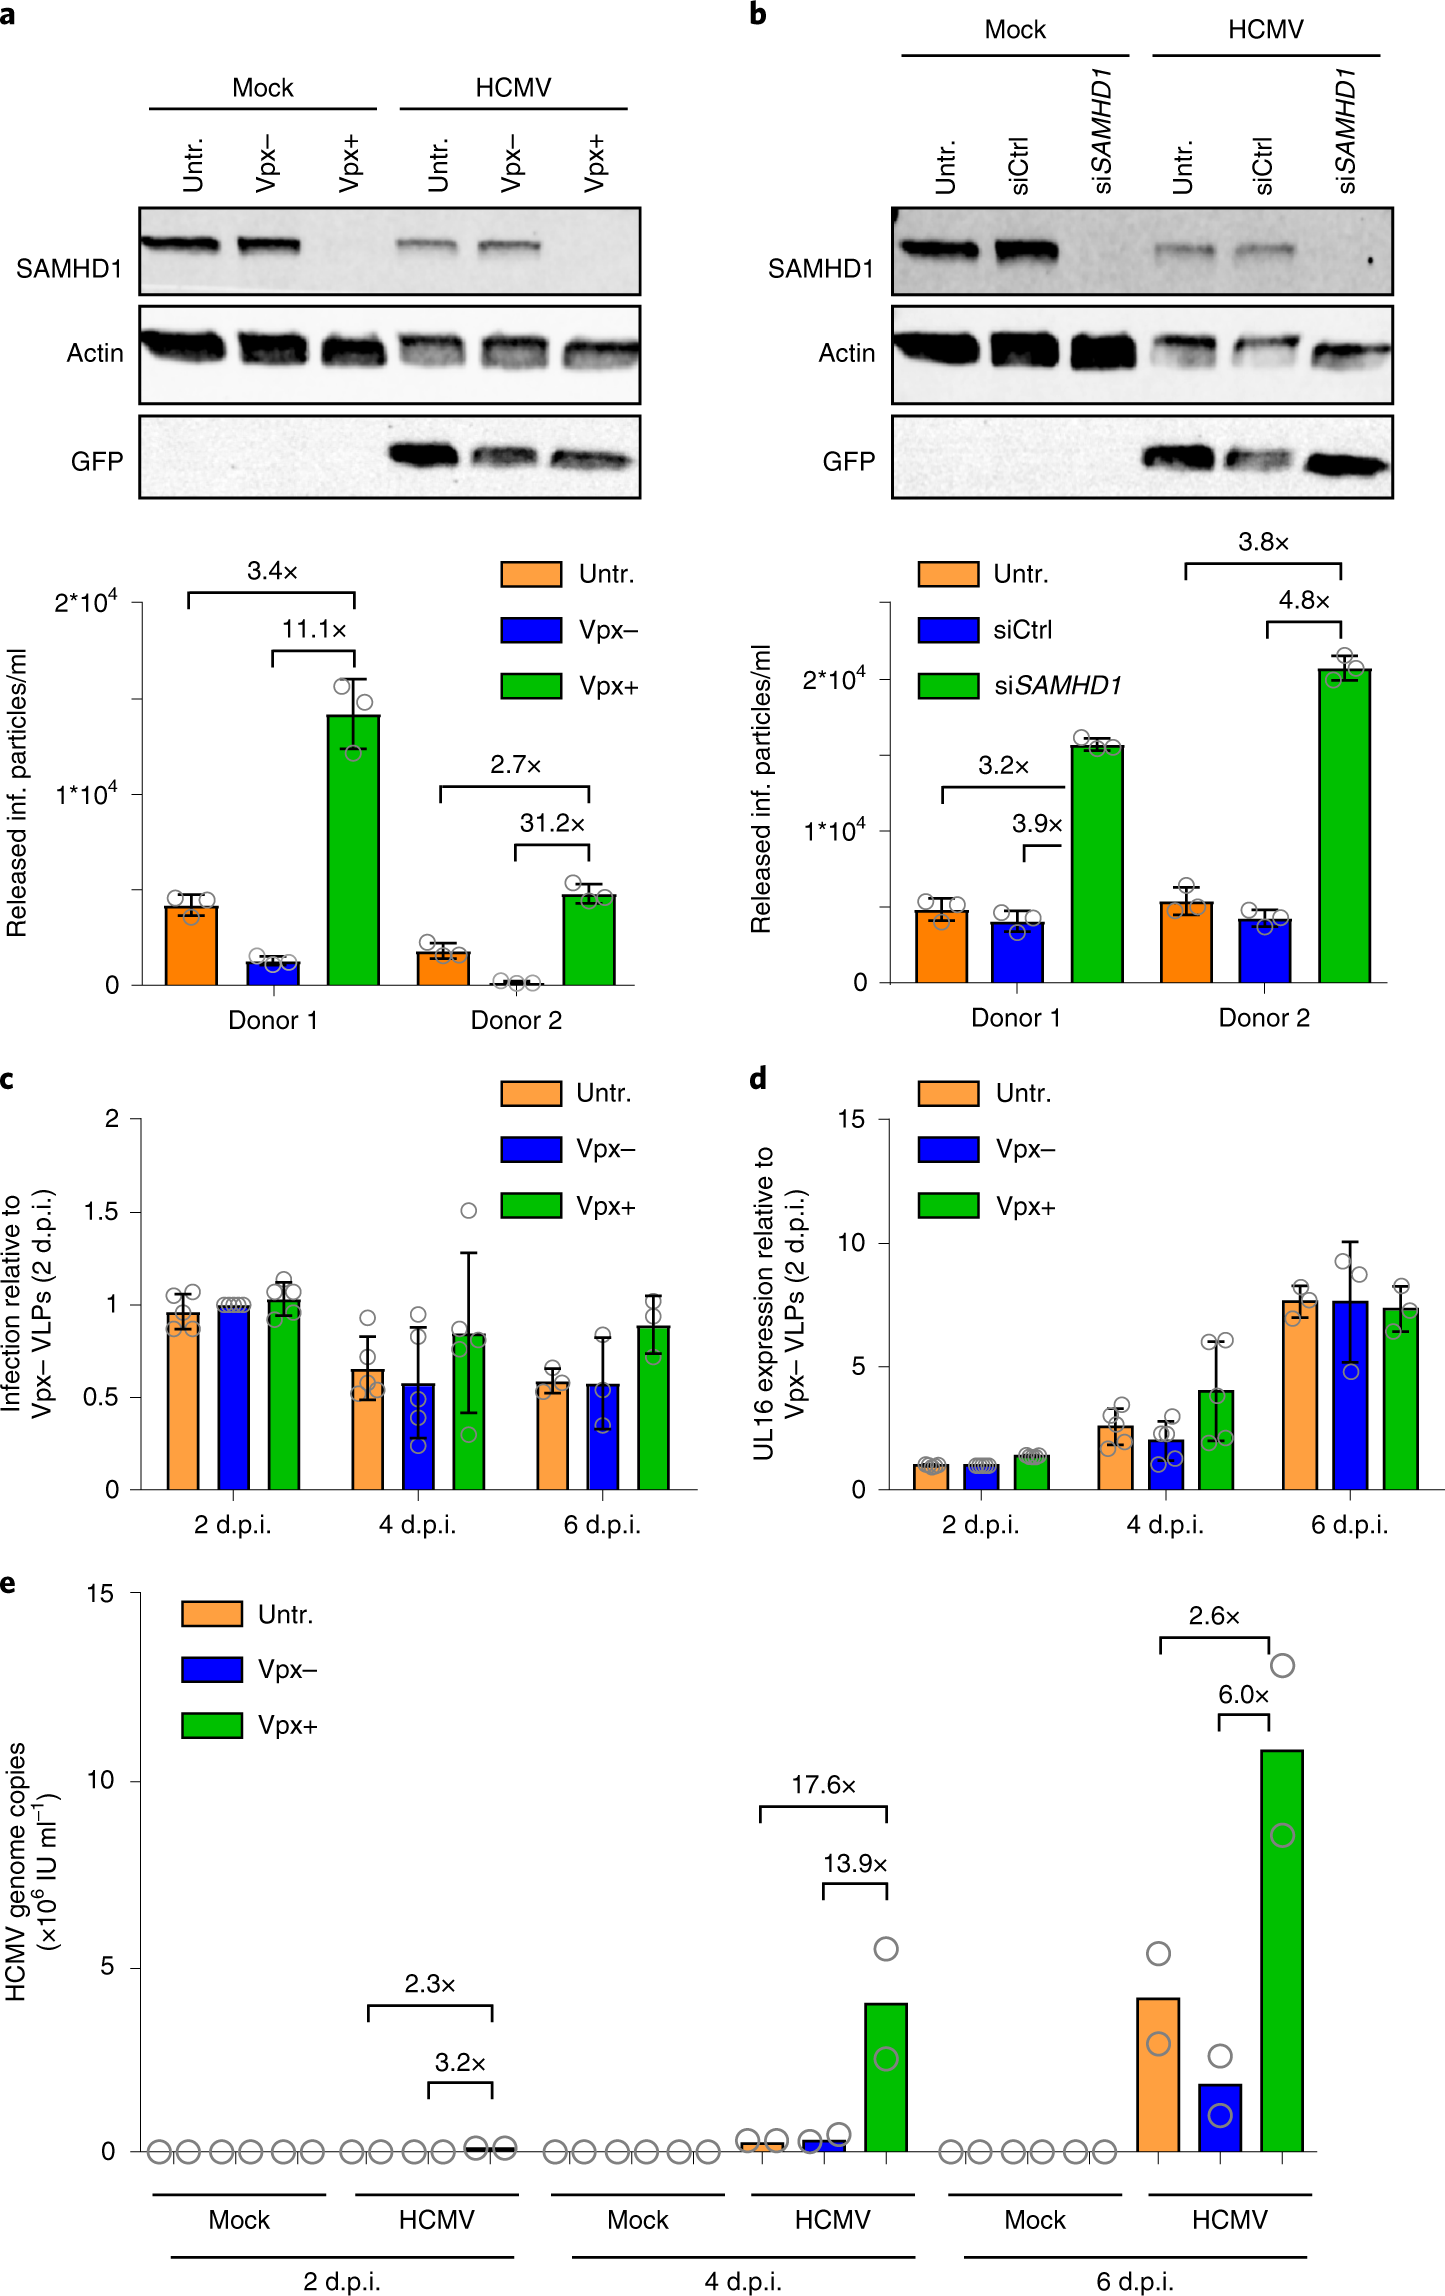 Human cytomegalovirus overcomes SAMHD1 restriction in macrophages via